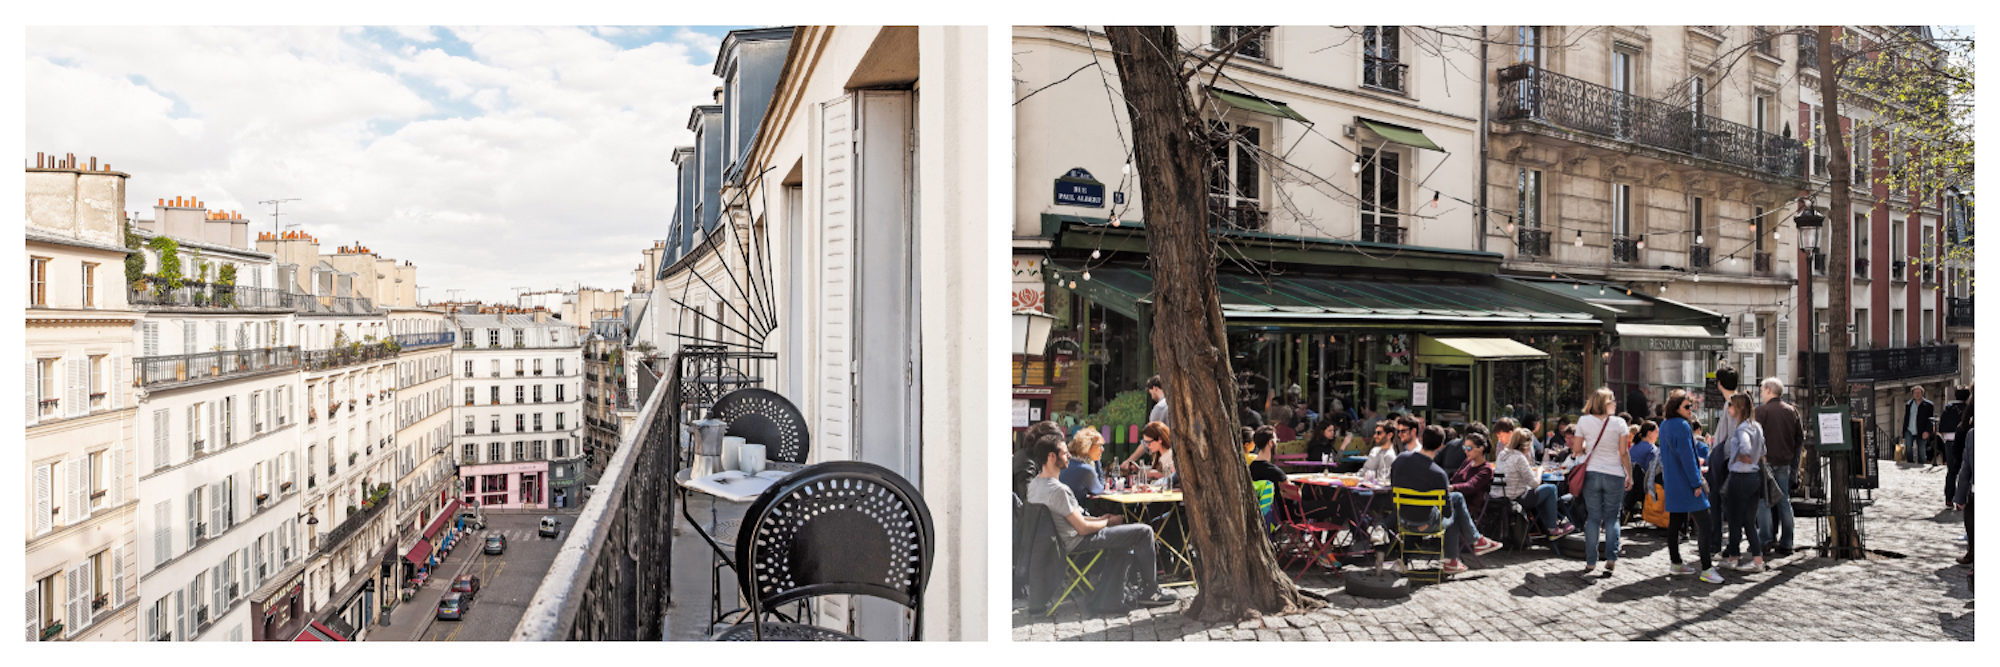 The view of a Paris street from the balcony of an apartment (left). A café in Montmartre in Paris, on a cobblestone square, where people are sat a tables outside, enjoying the sunshine (right).